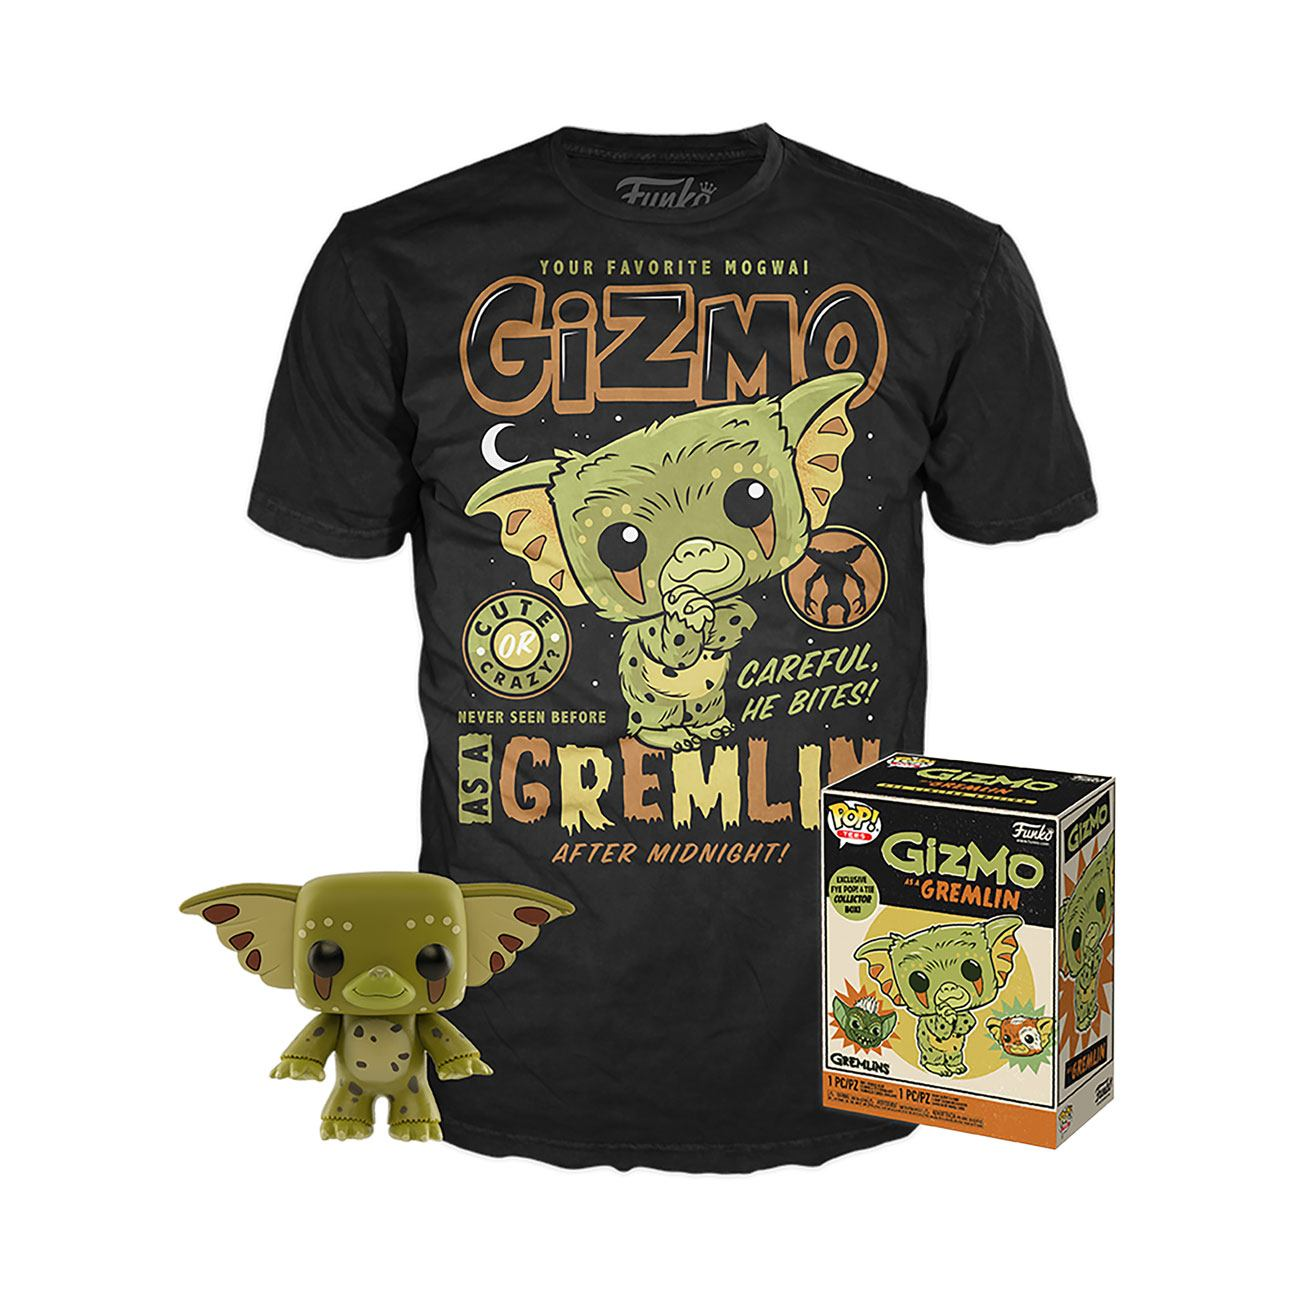 Gremlins POP! & Tee Box Gizmo heo Exclusive Size M